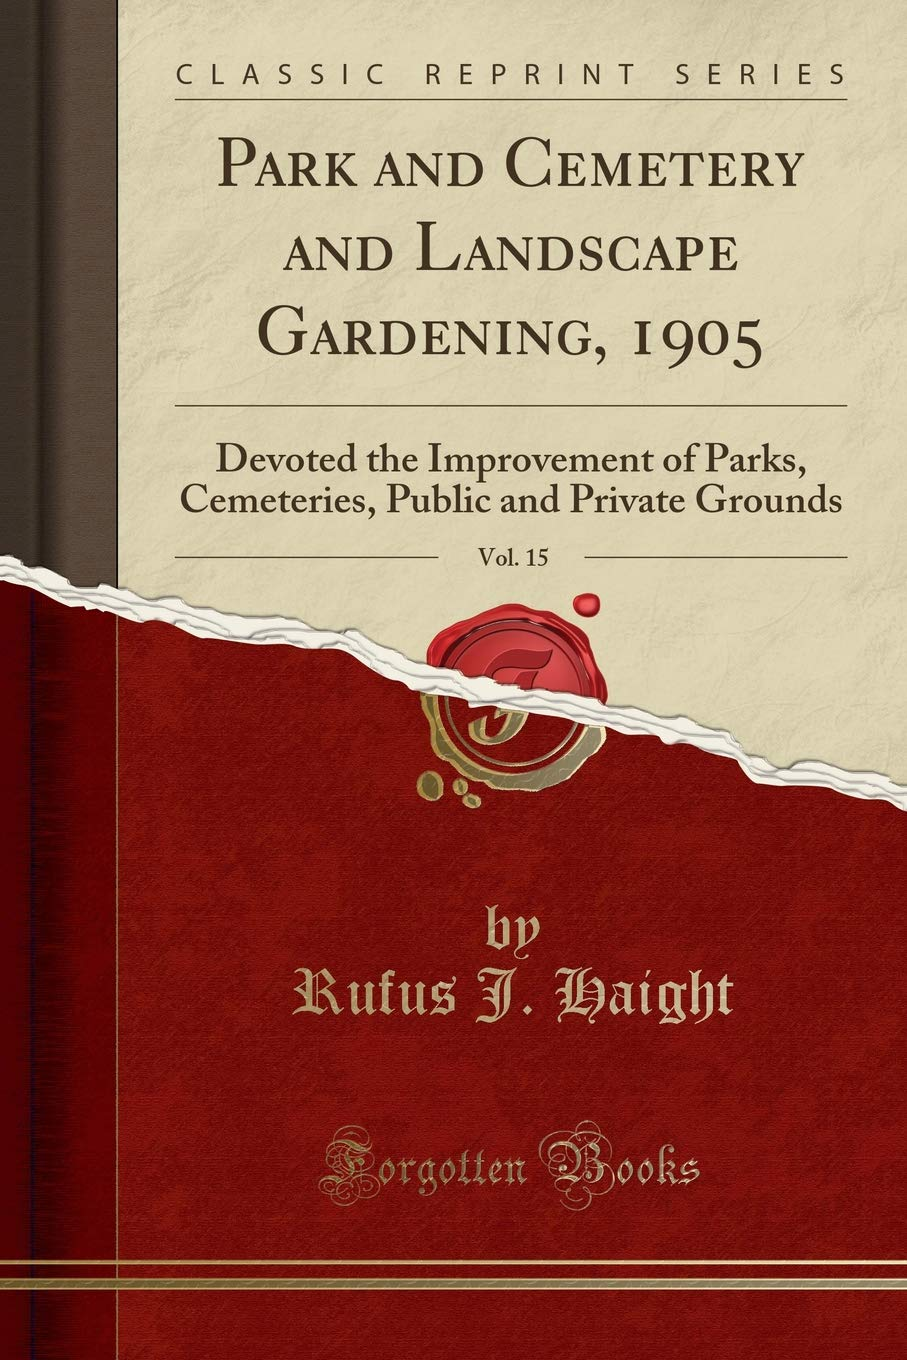 Park and Cemetery and Landscape Gardening, 1905, Vol. 15: Devoted the Improvement of Parks, Cemeteries, Public and Private Grounds (Classic Reprint) pdf epub